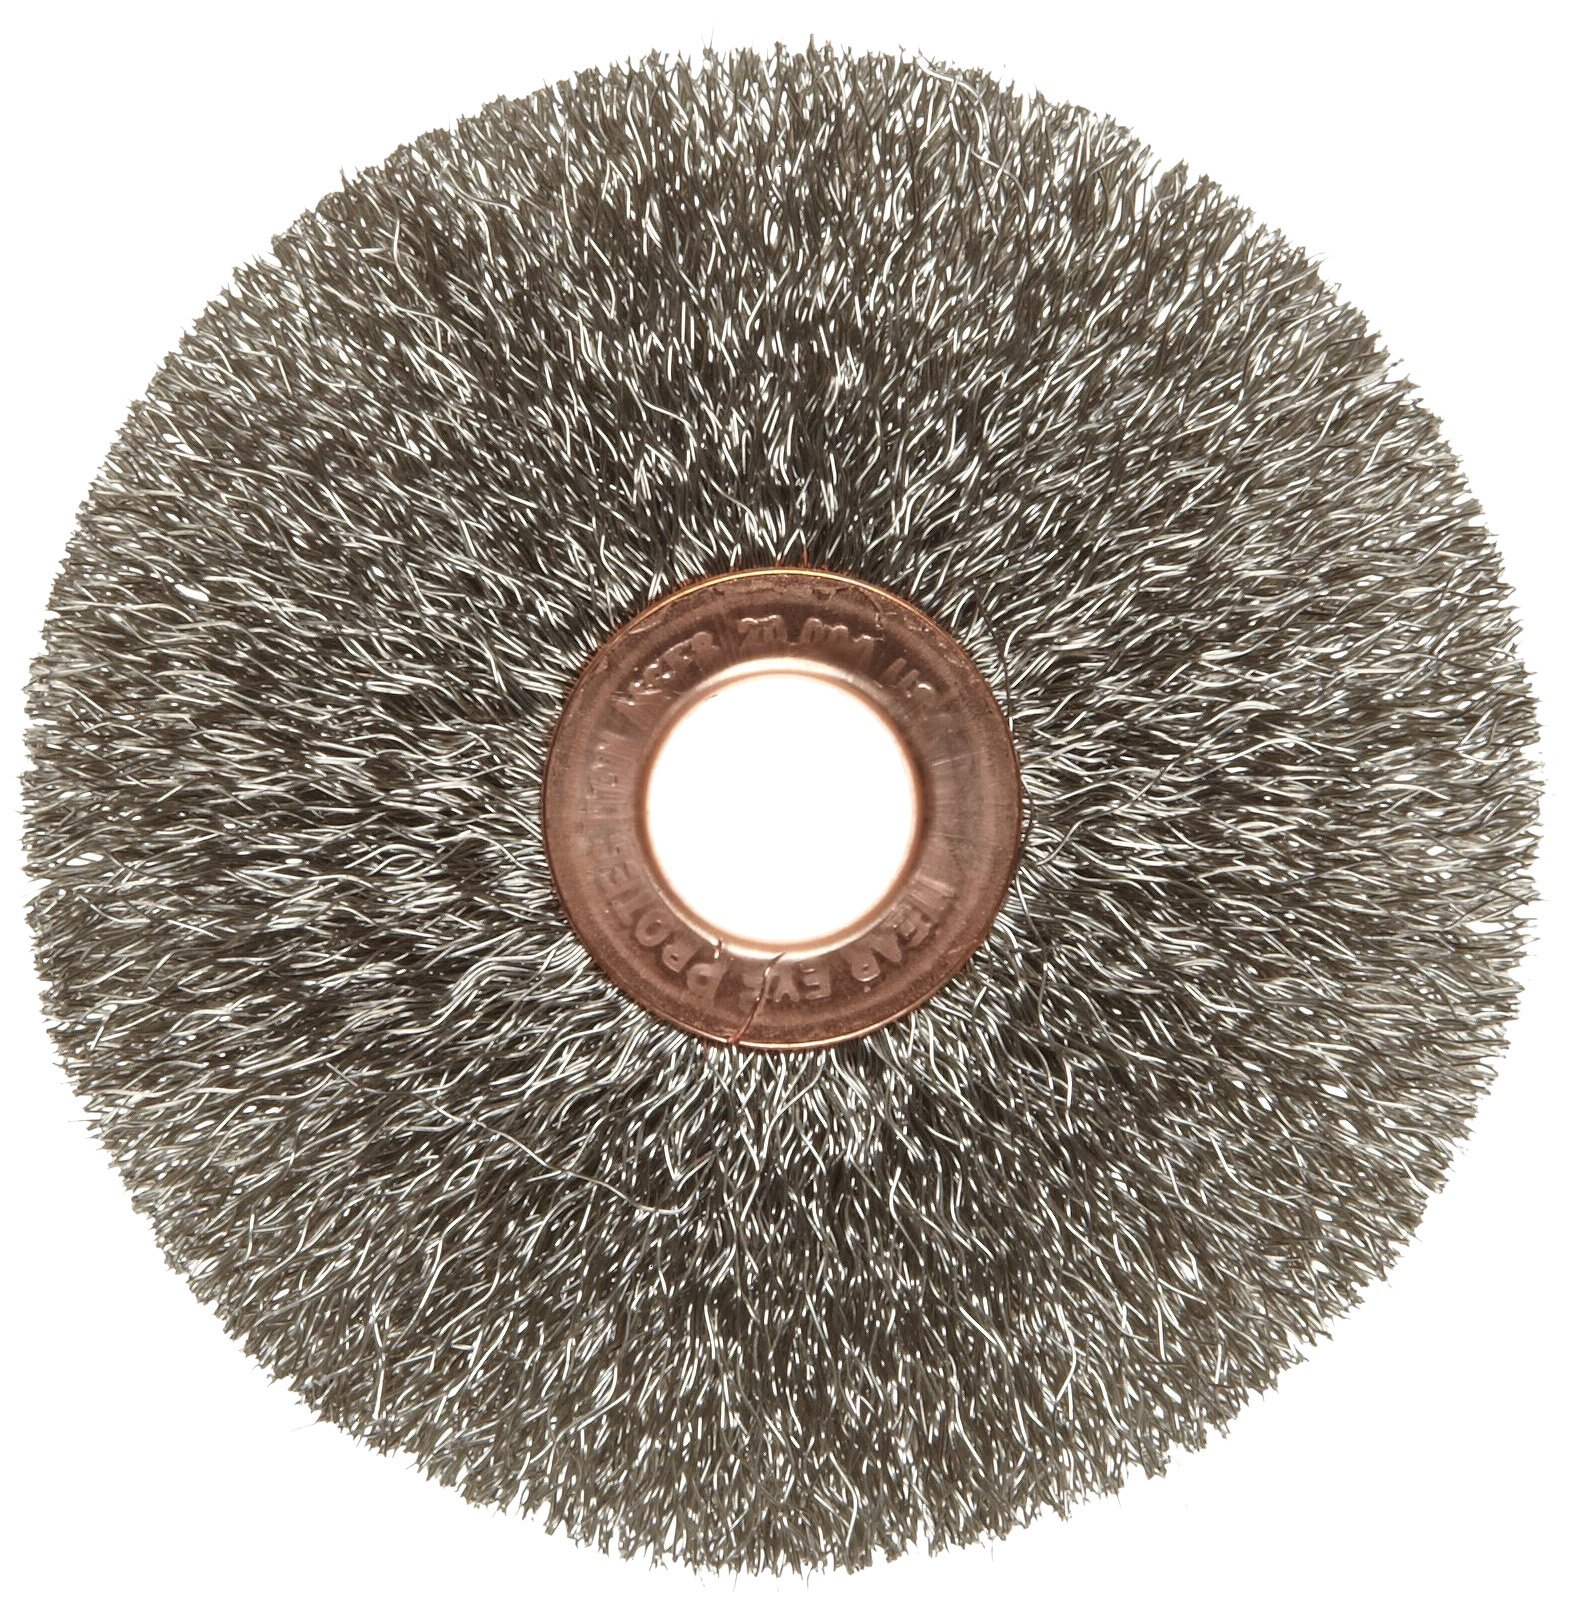 Weiler Copper Center Wire Wheel Brush, Round Hole, Stainless Steel 302, Crimped Wire, 3'' Diameter, 0.008'' Wire Diameter, 1/2'' Arbor, 1'' Bristle Length, 5/8'' Brush Face Width, 20000 rpm